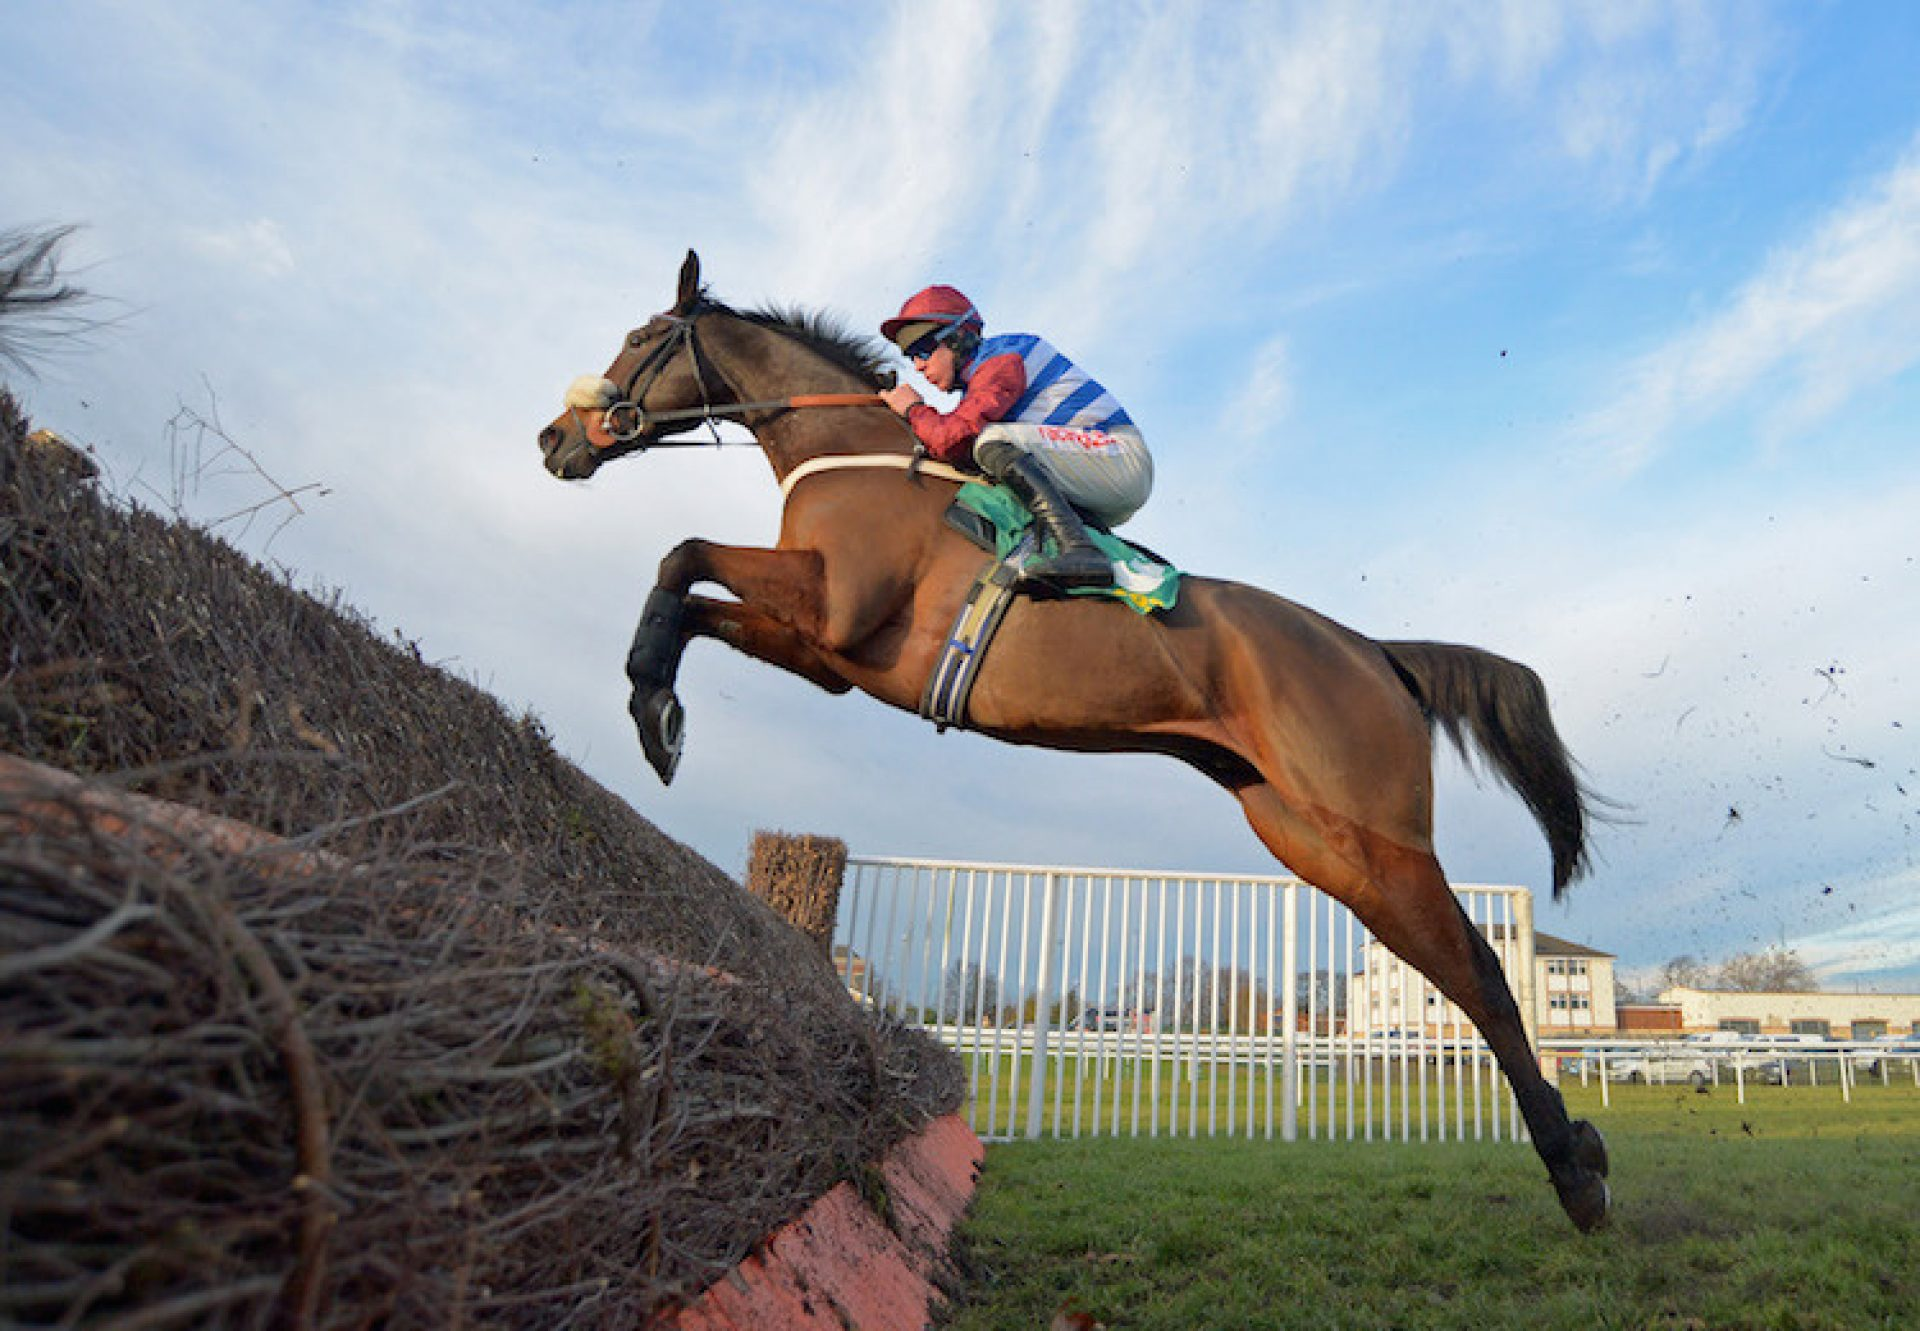 Keeper Hill (Westerner) winning the G2 December Novices' Chase at Doncaster